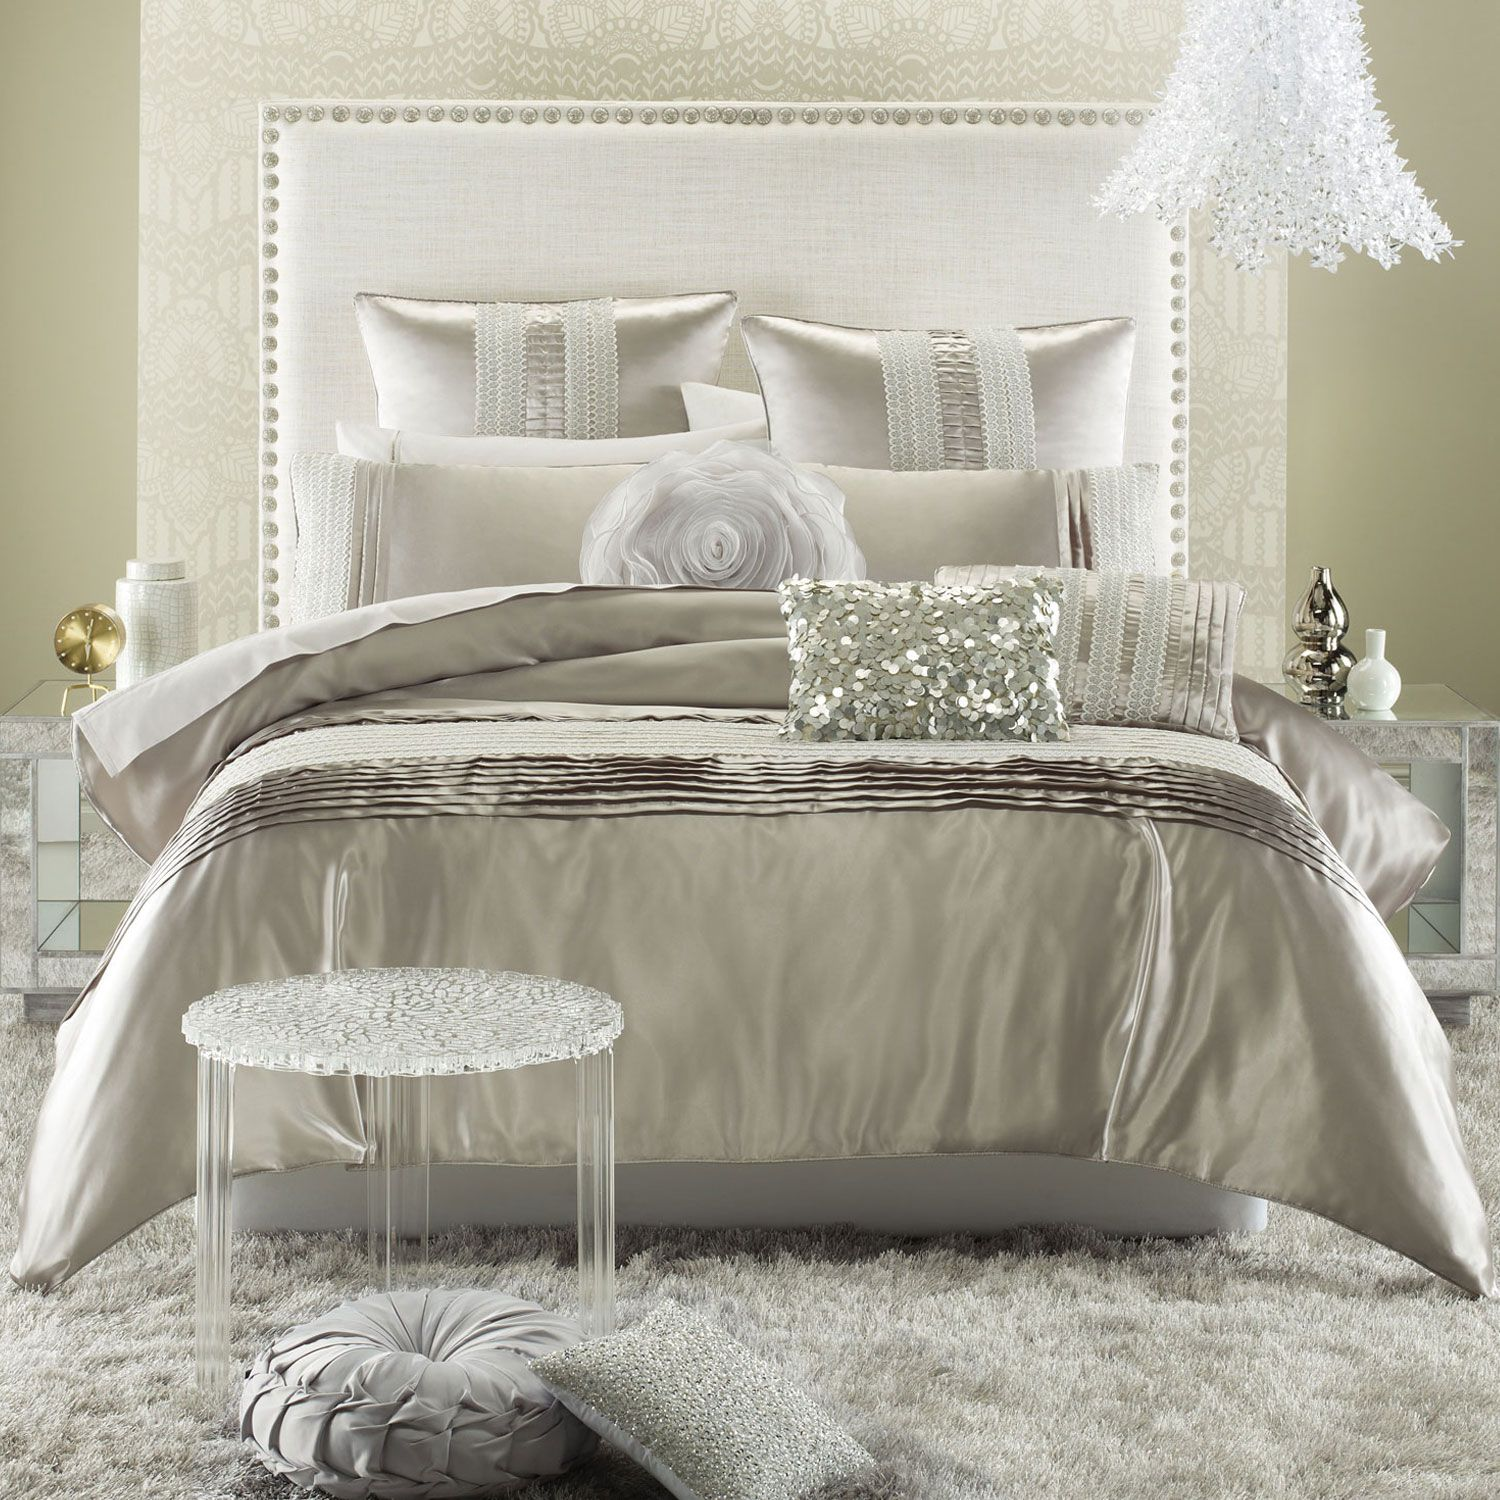 Bedroom Delightful Hollywood Glamour Luxury Bedding With